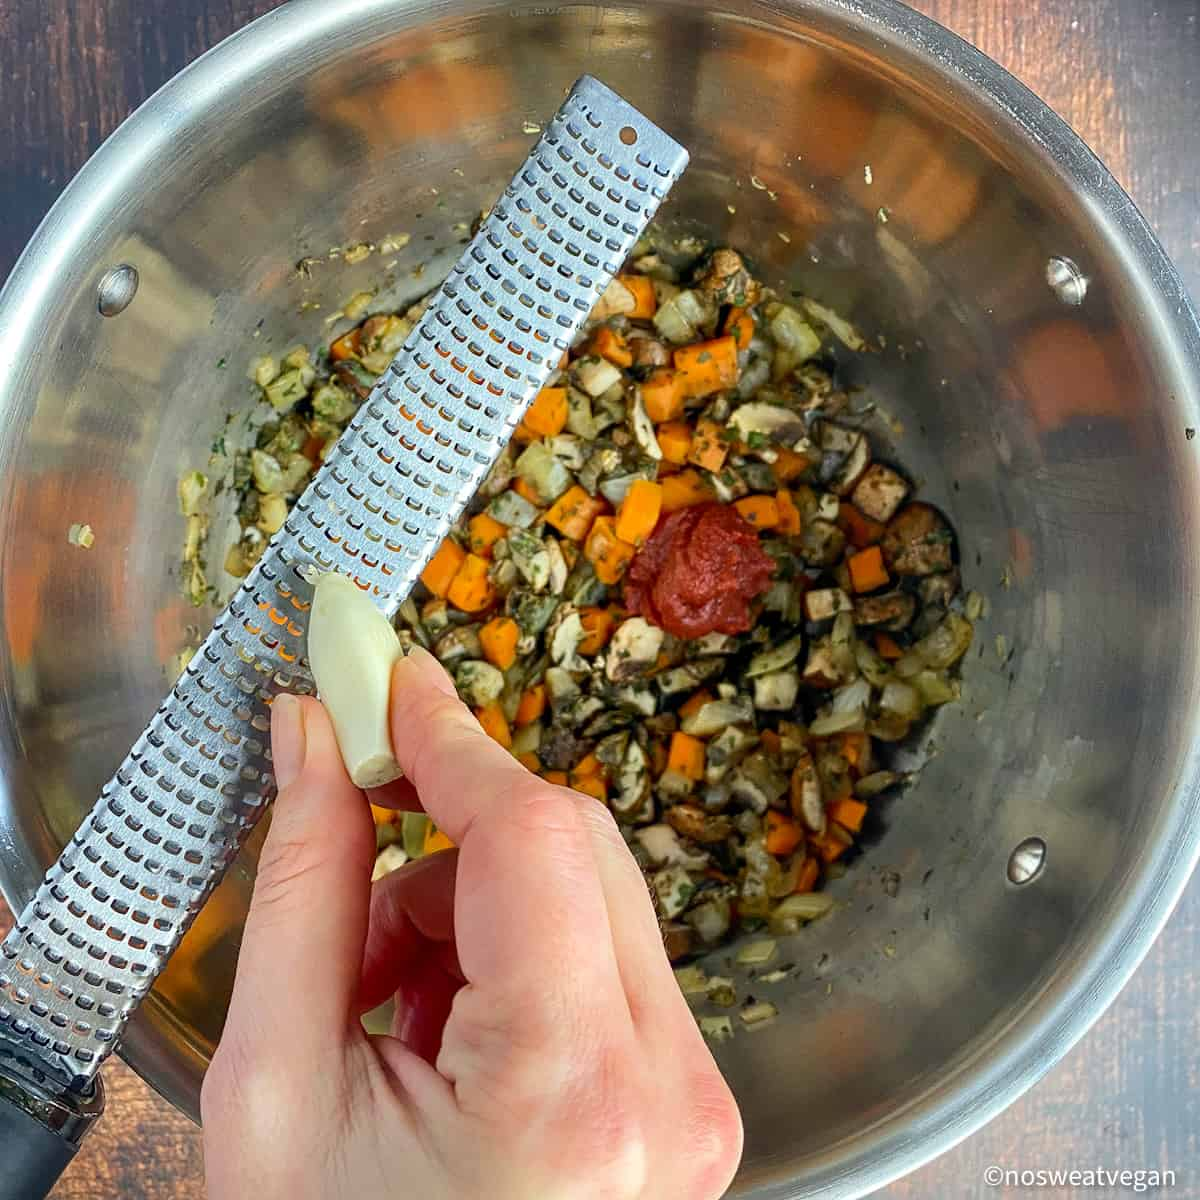 Pot with vegetables and tomato paste. Hand using a Microplane to grate garlic.